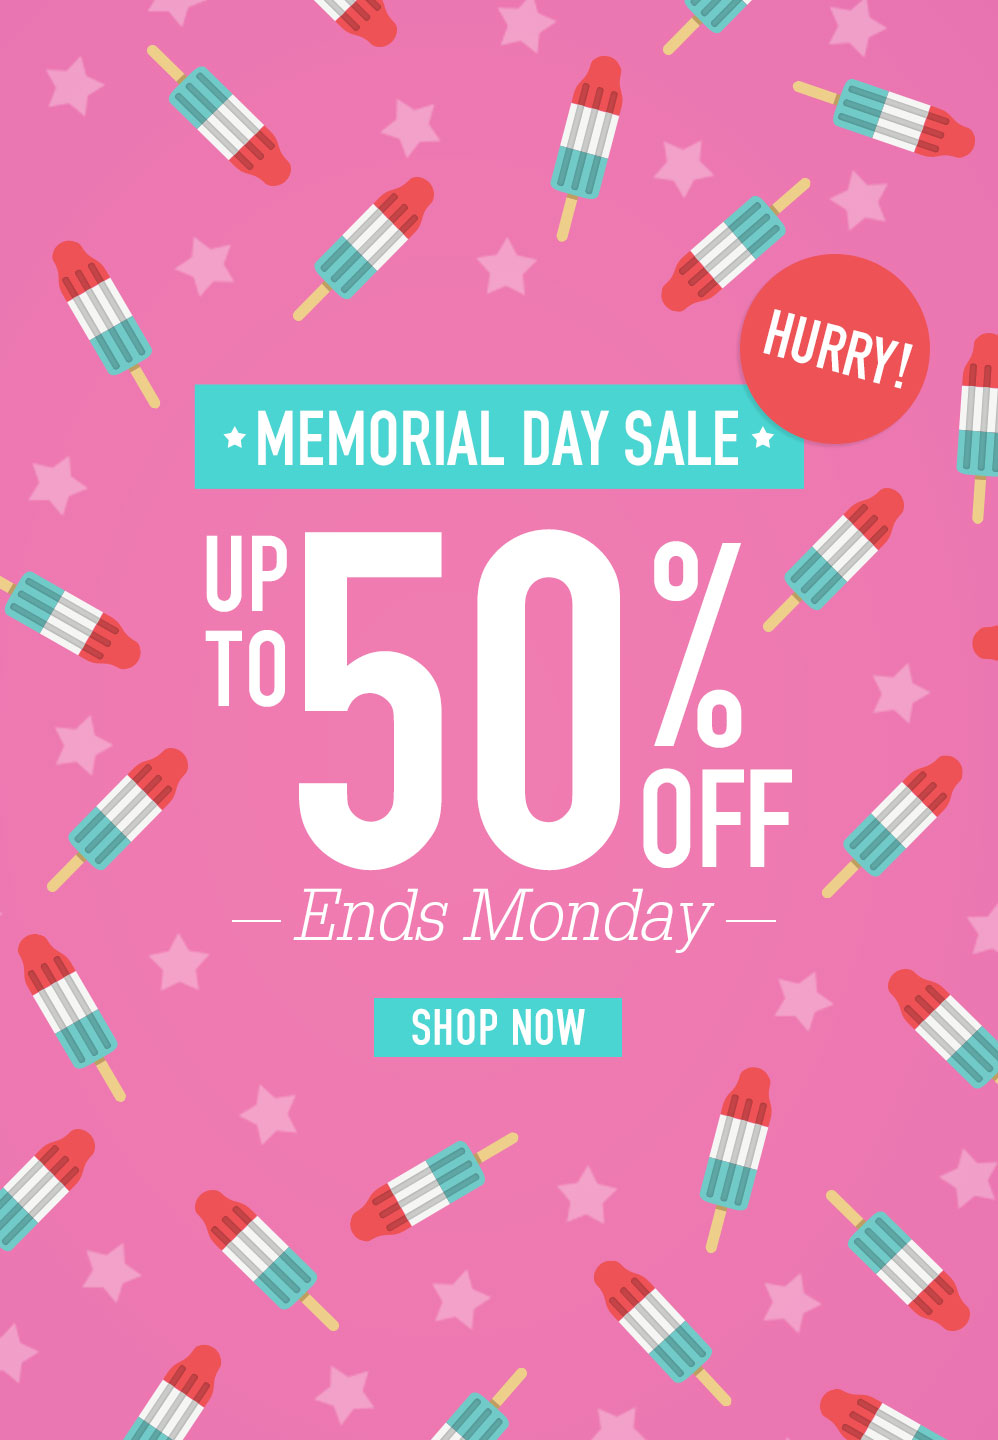 MEMORIAL DAY SALE. UP TO 50% OFF HURRY! ENDS MONDAY. SHOP NOW